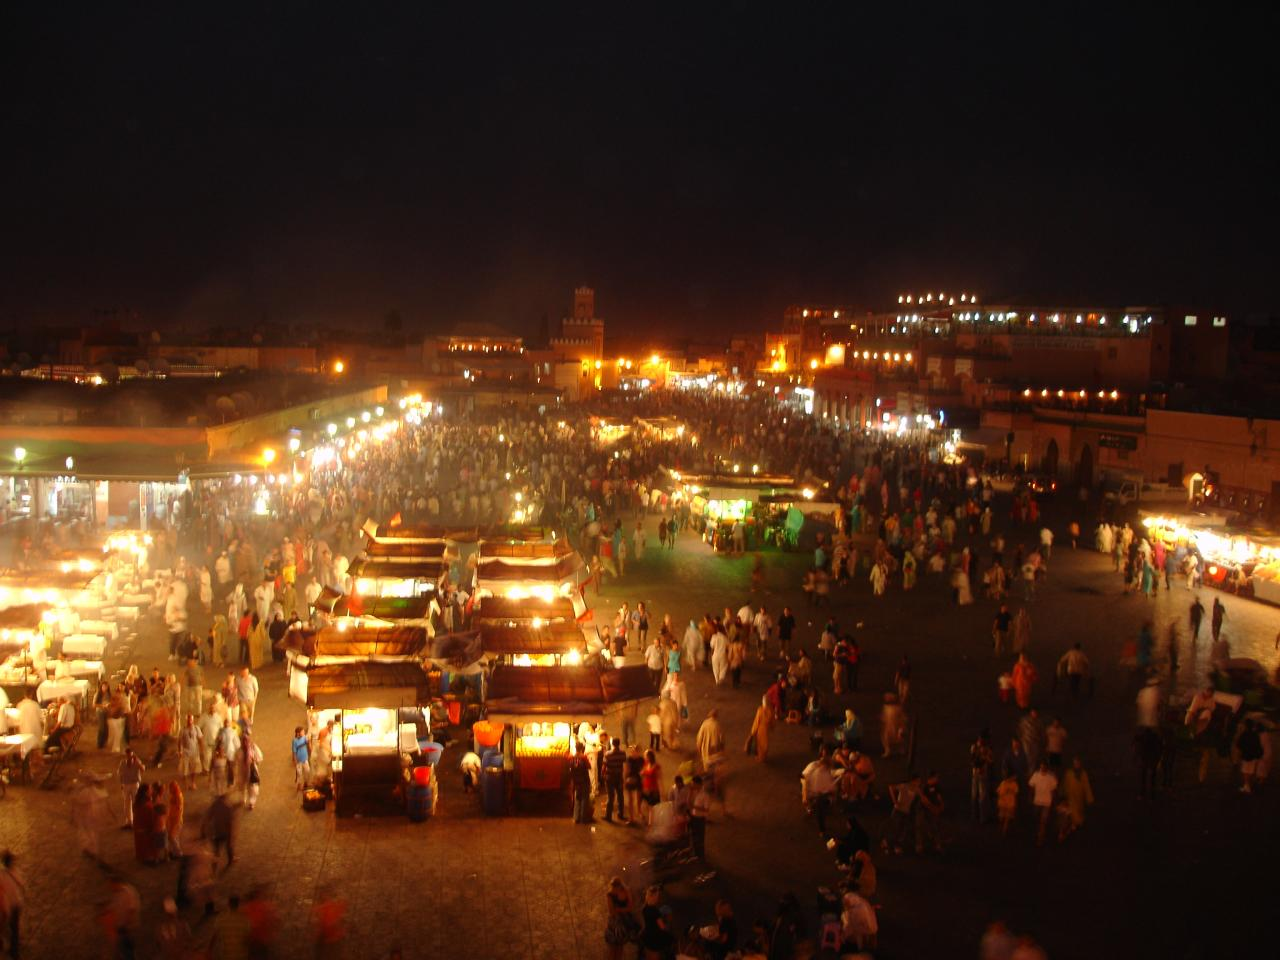 Jemaa el-Fna Square by night in Marrakech